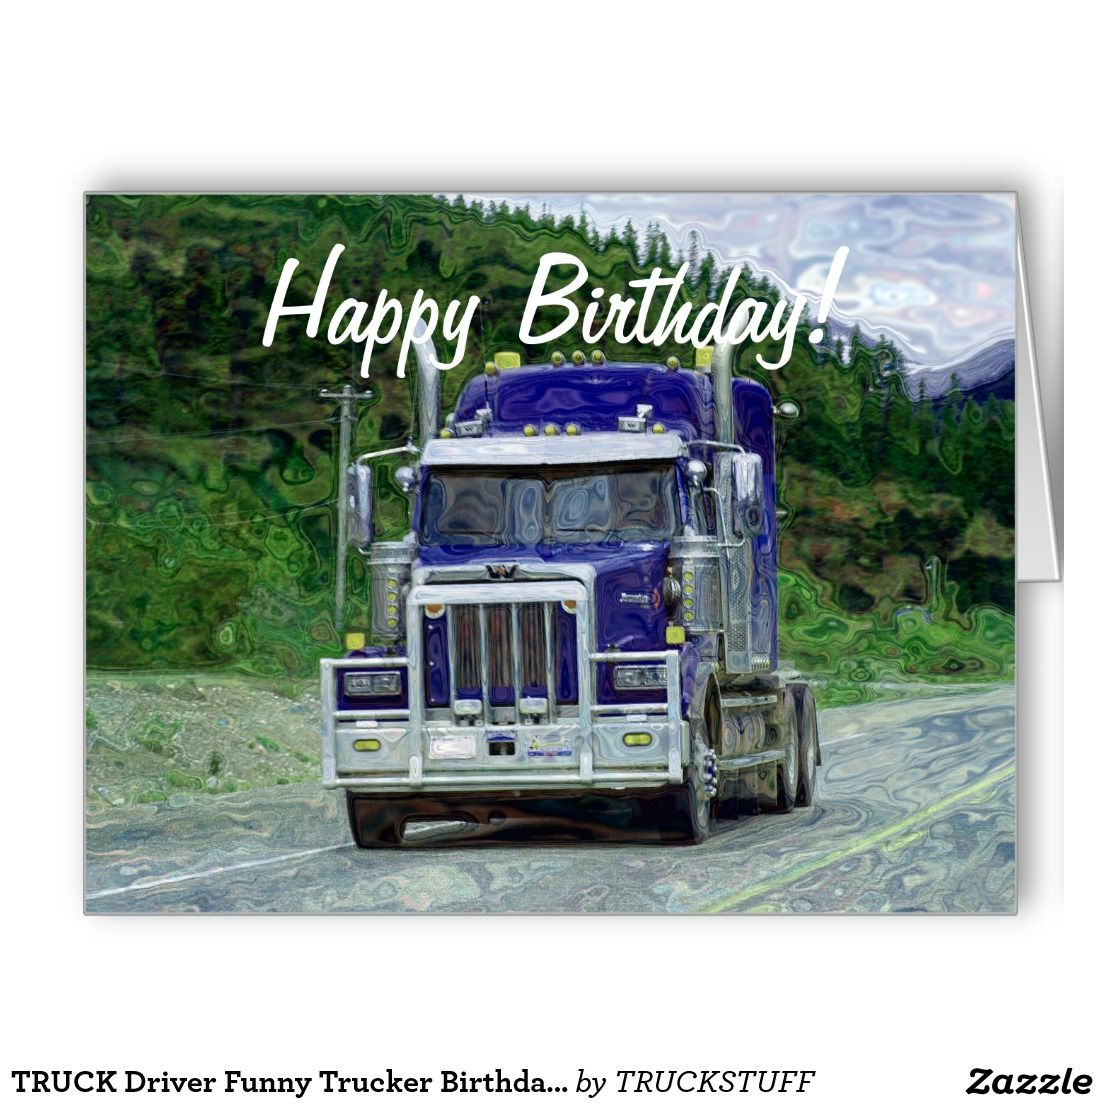 TRUCK Driver Funny Trucker Birthday Cards | * Trucker Quotes, Art ...